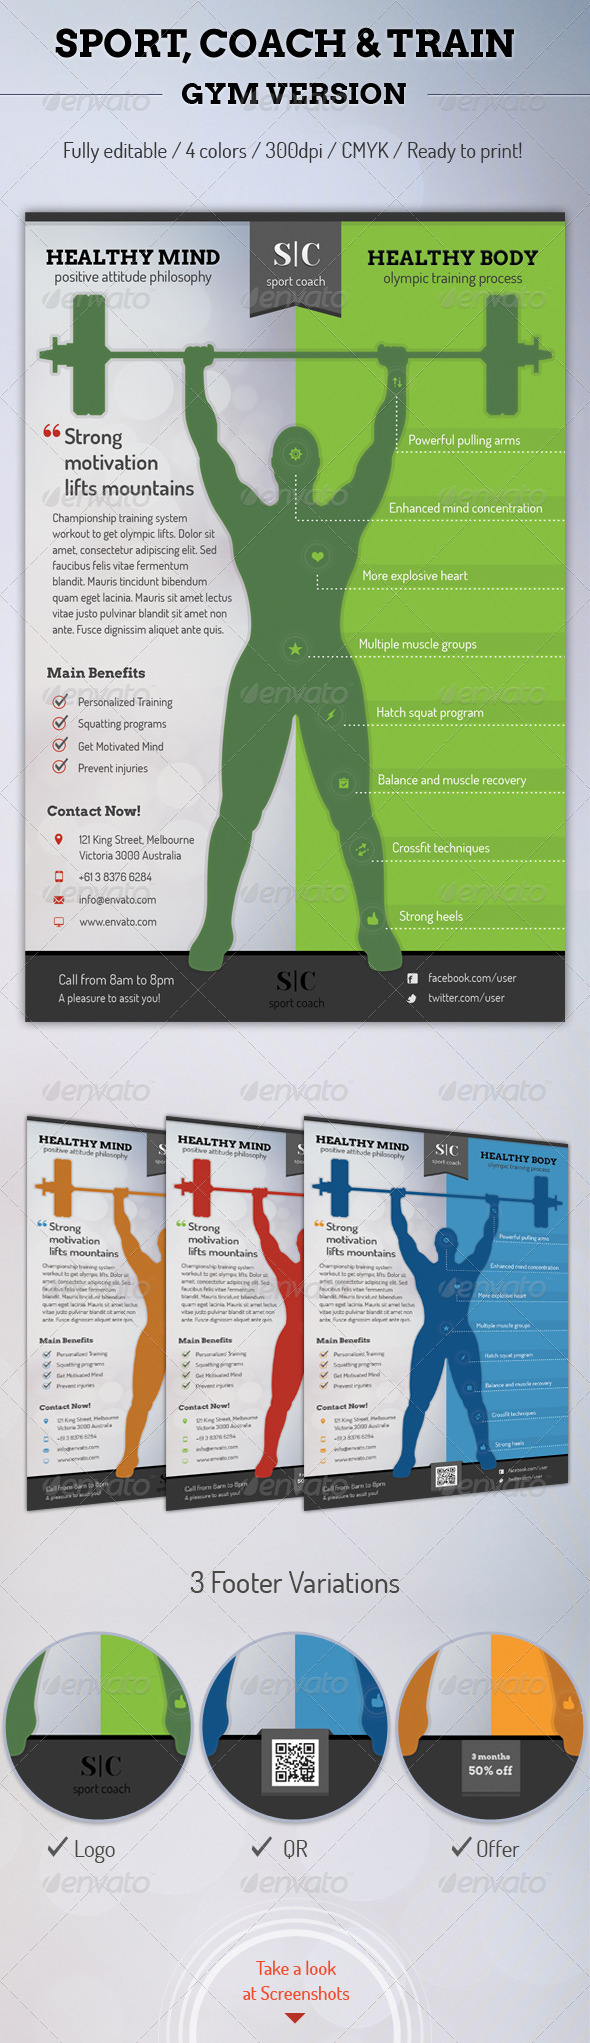 GraphicRiver Sport Coach and Train Flyer Gym Version 6382834